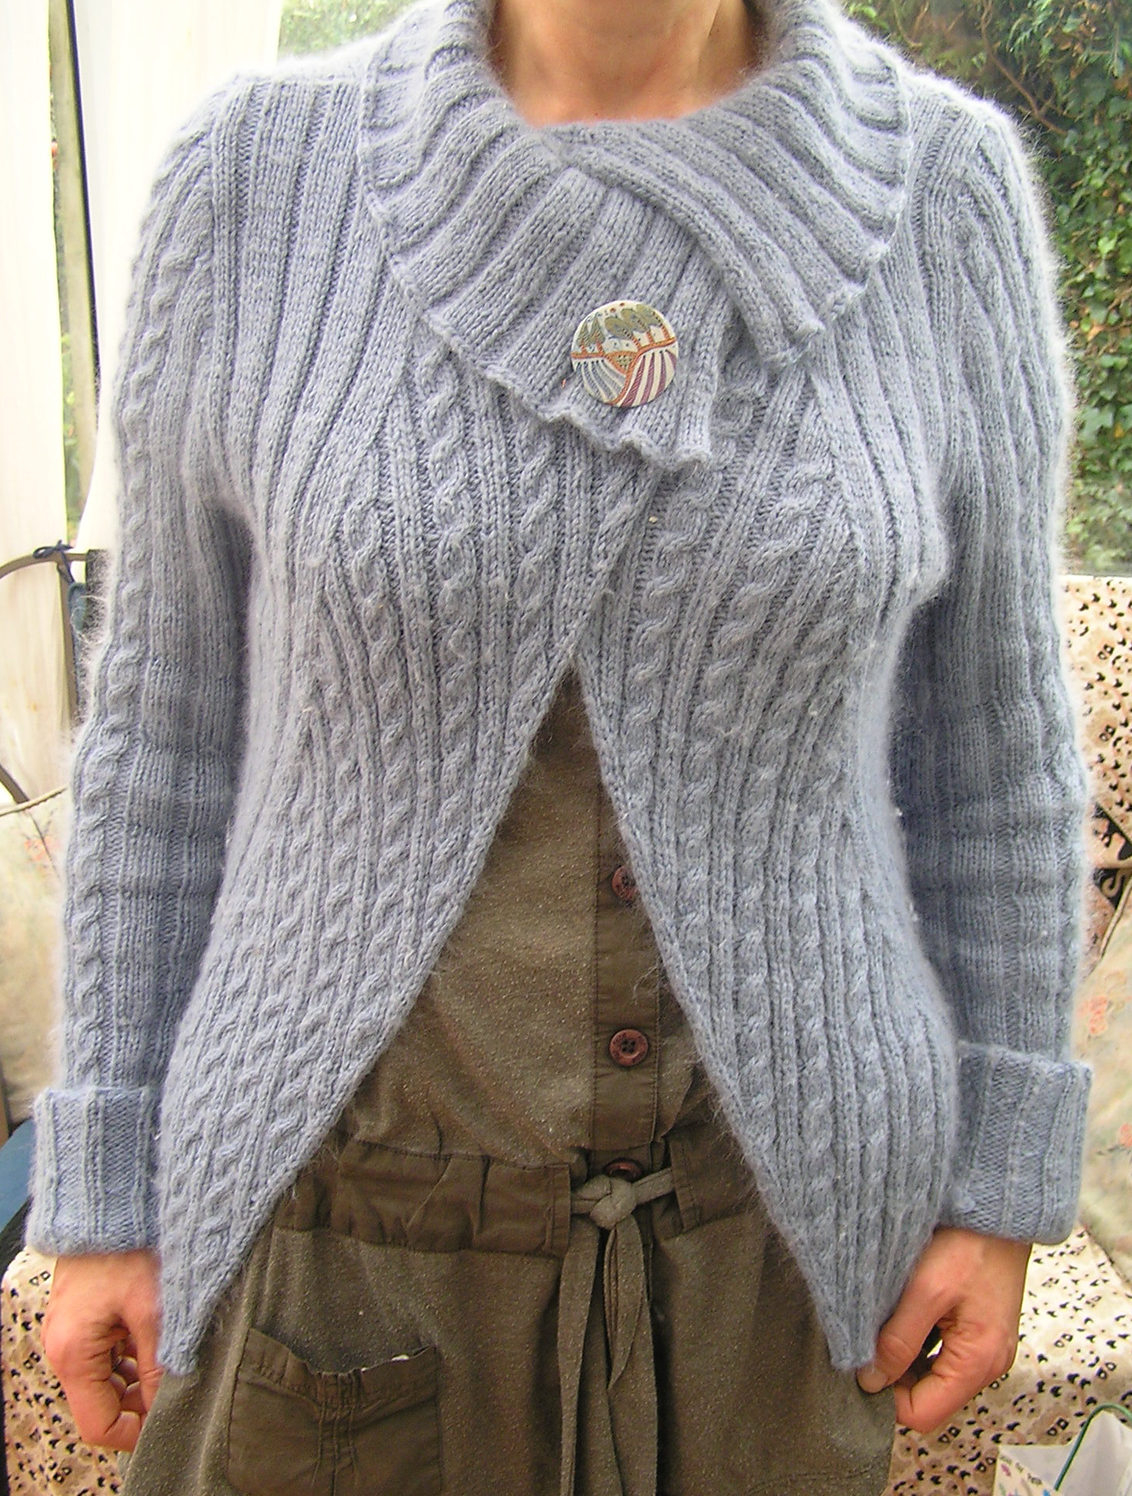 Free Knitted Cardigan Patterns Wrap Cardigan Knitting Patterns In The Loop Knitting